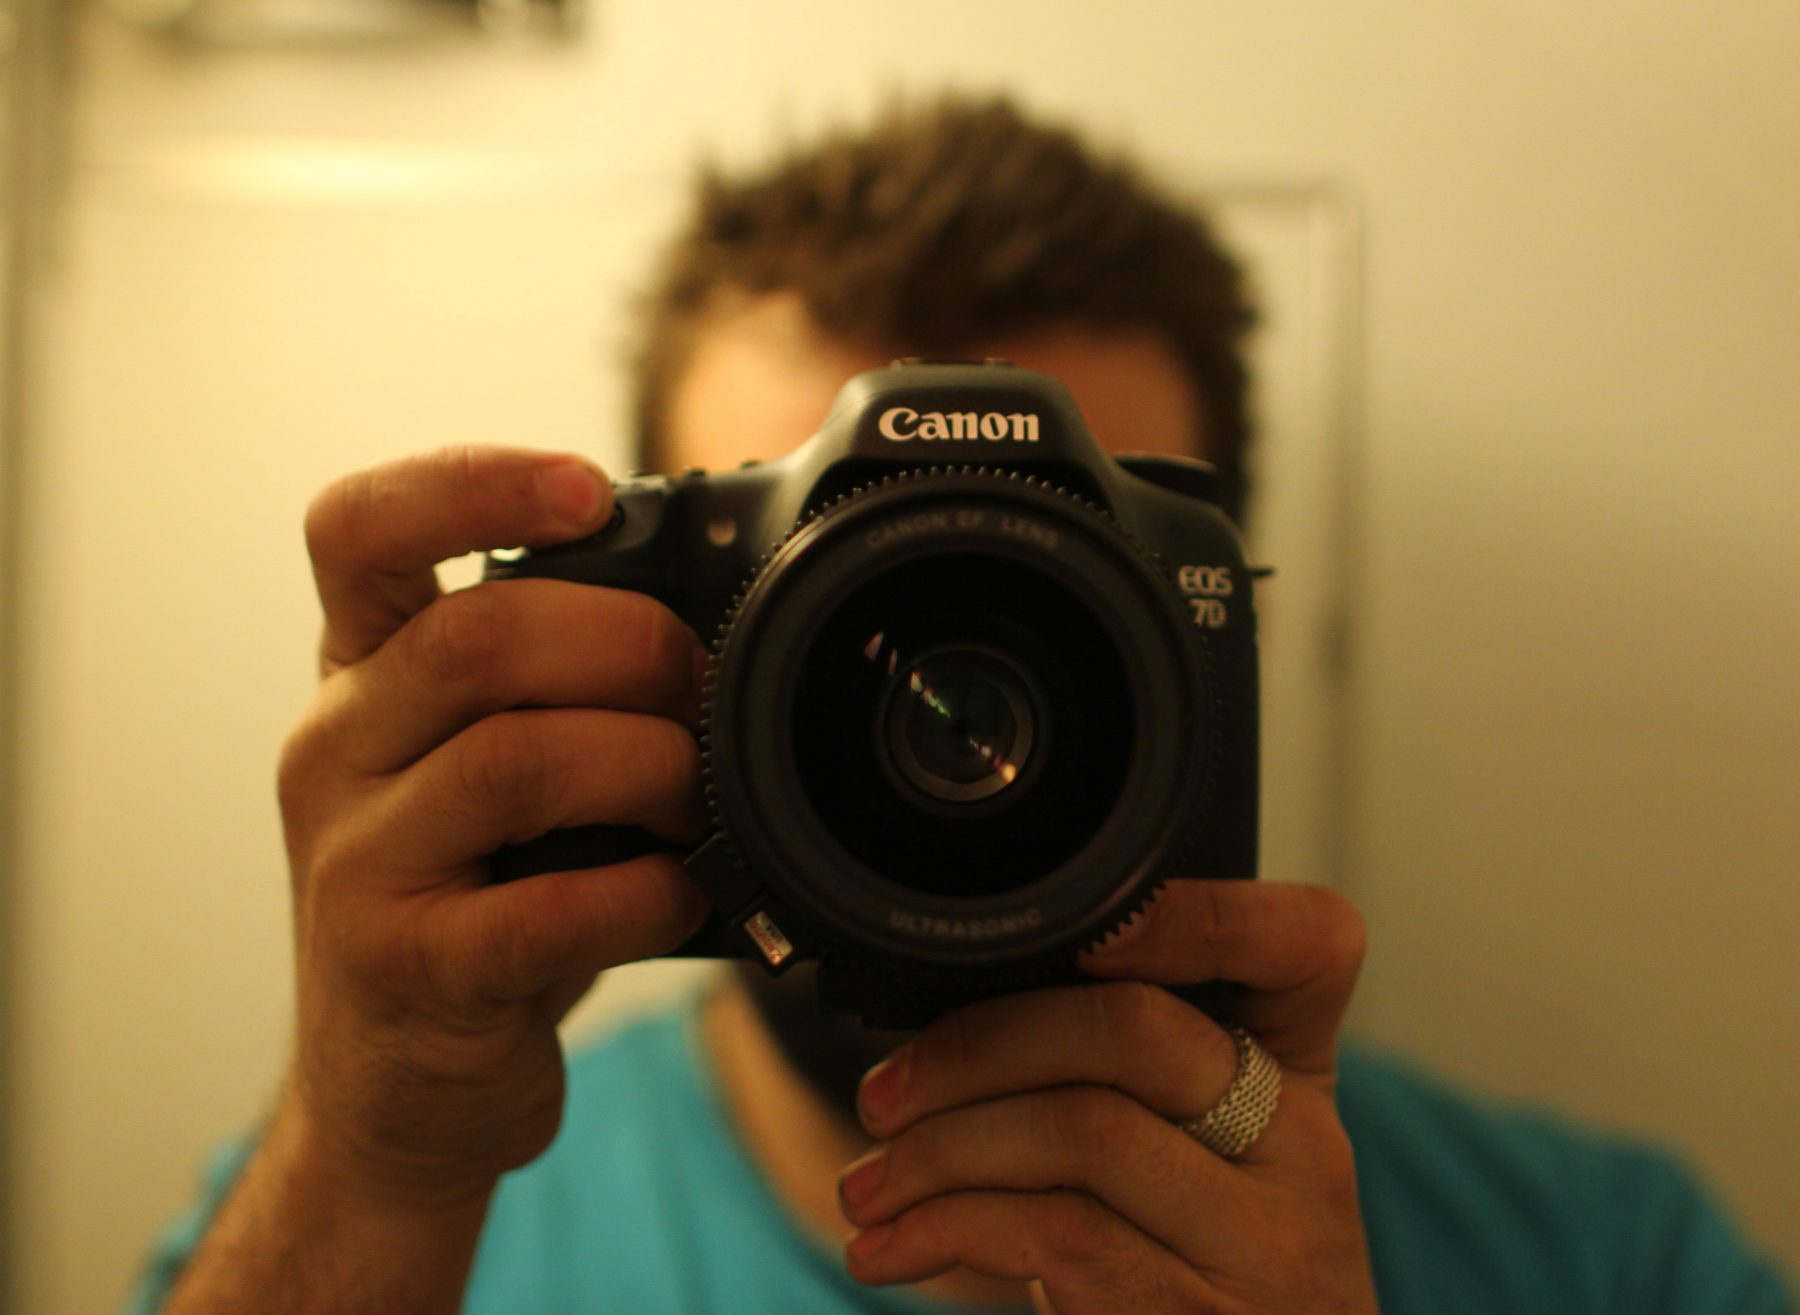 Canon 7D finally gets the firmware it has needed! Download it now ...